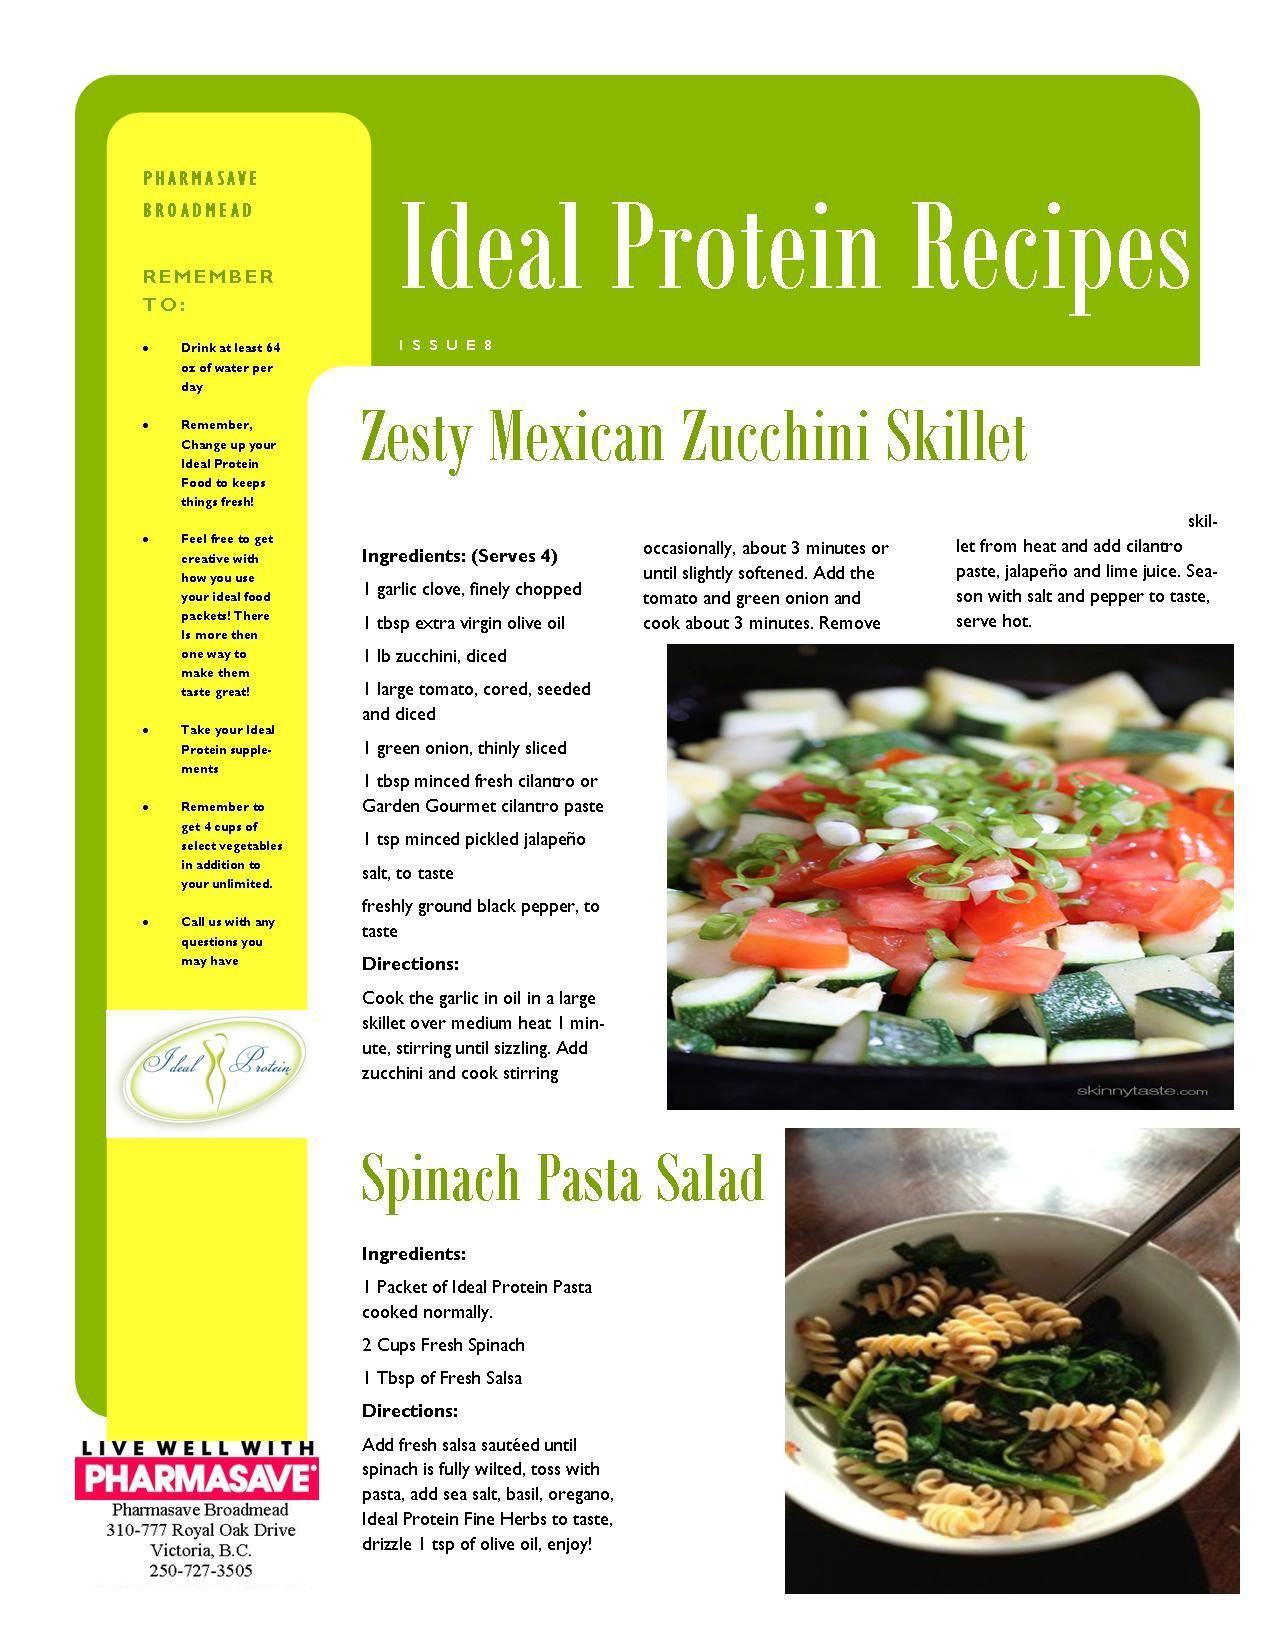 ideal protein recipes phase 1 dinner #idealproteinrecipesphase1dinner Recipes | Pharmasave Broadmead